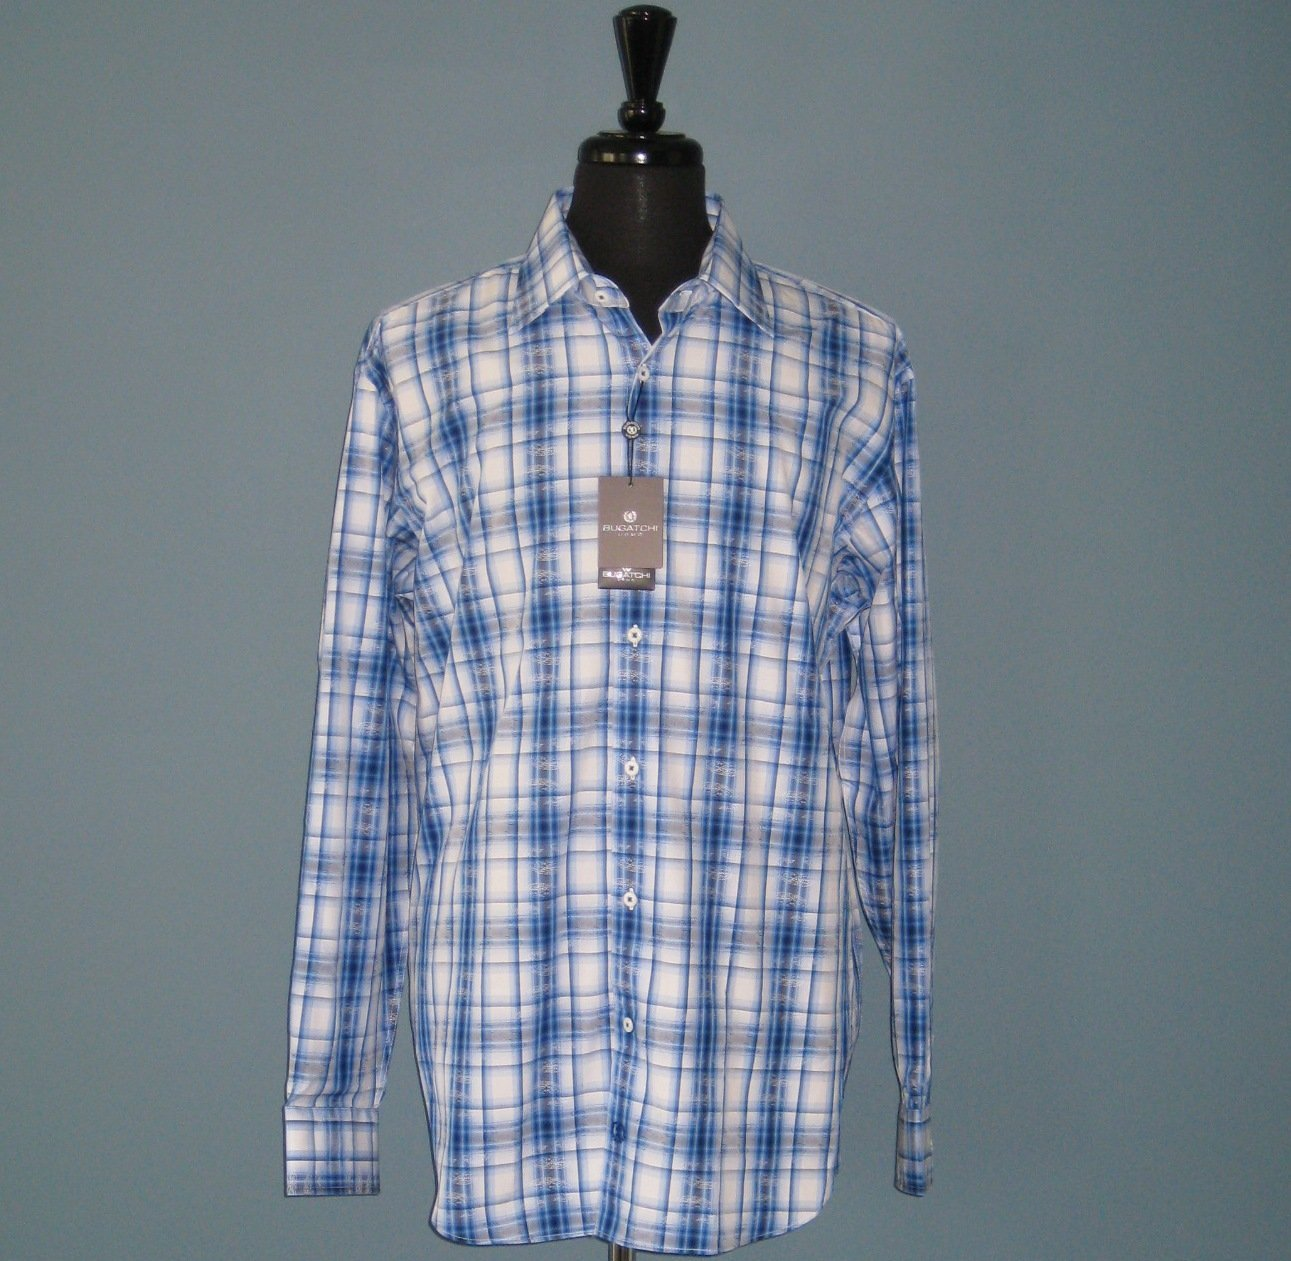 NWT Bugatchi Uomo L/S Blue Plaid & Paisley Print 100% Cotton Shirt - XL